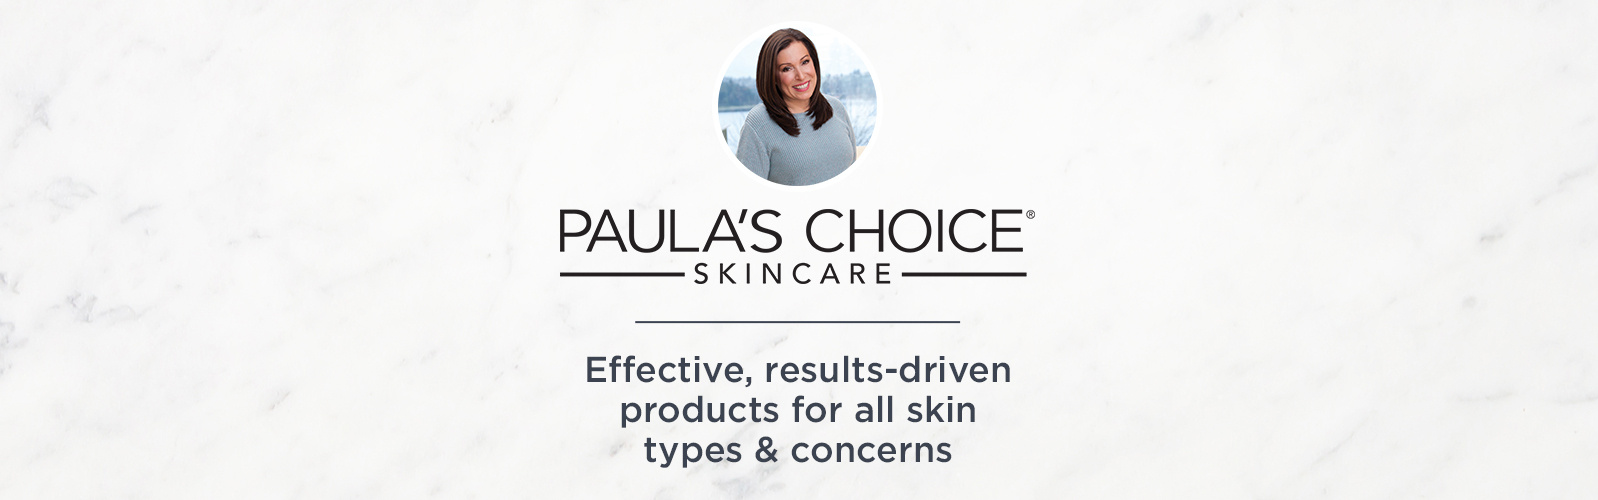 Paula's Choice Skincare.  Effective, results-driven products for all skin types & concerns